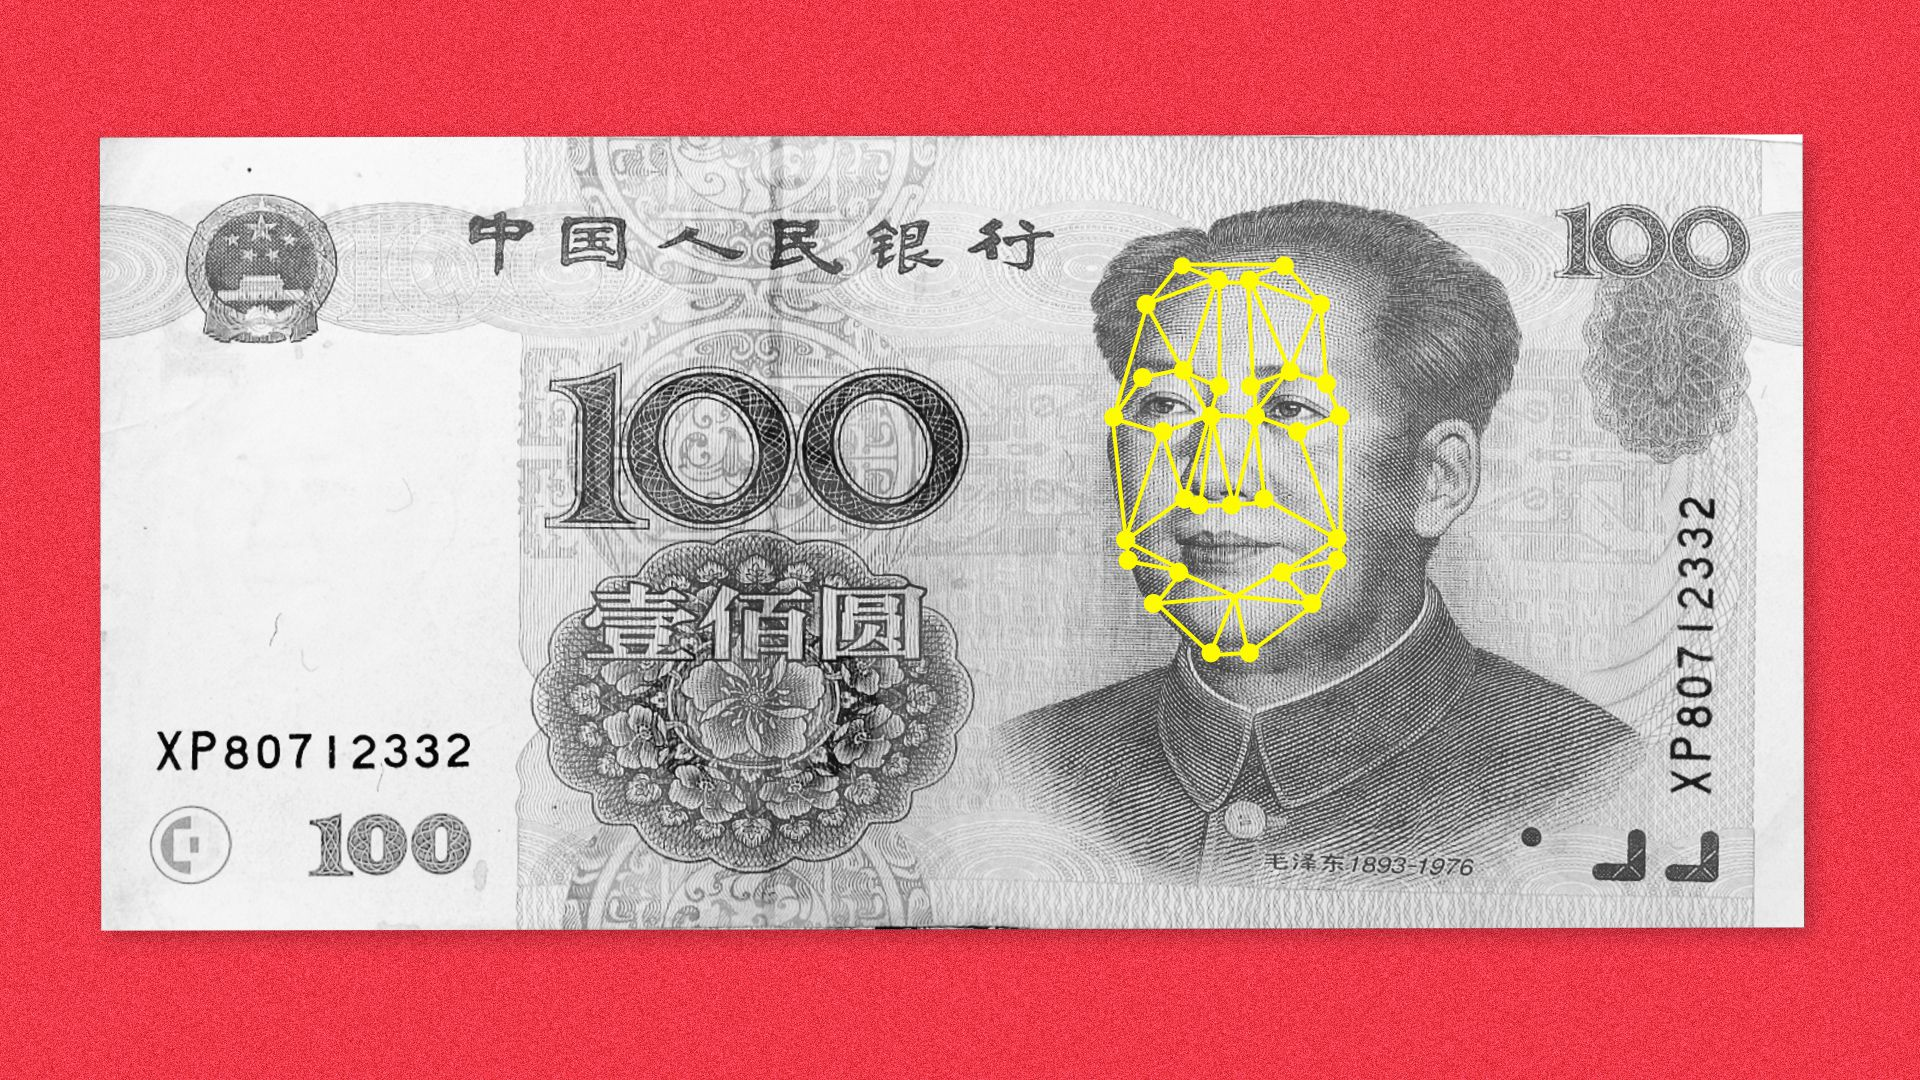 Illustration of a Yuan/Renminbi with facial recognition points on Mao Zedong's face.